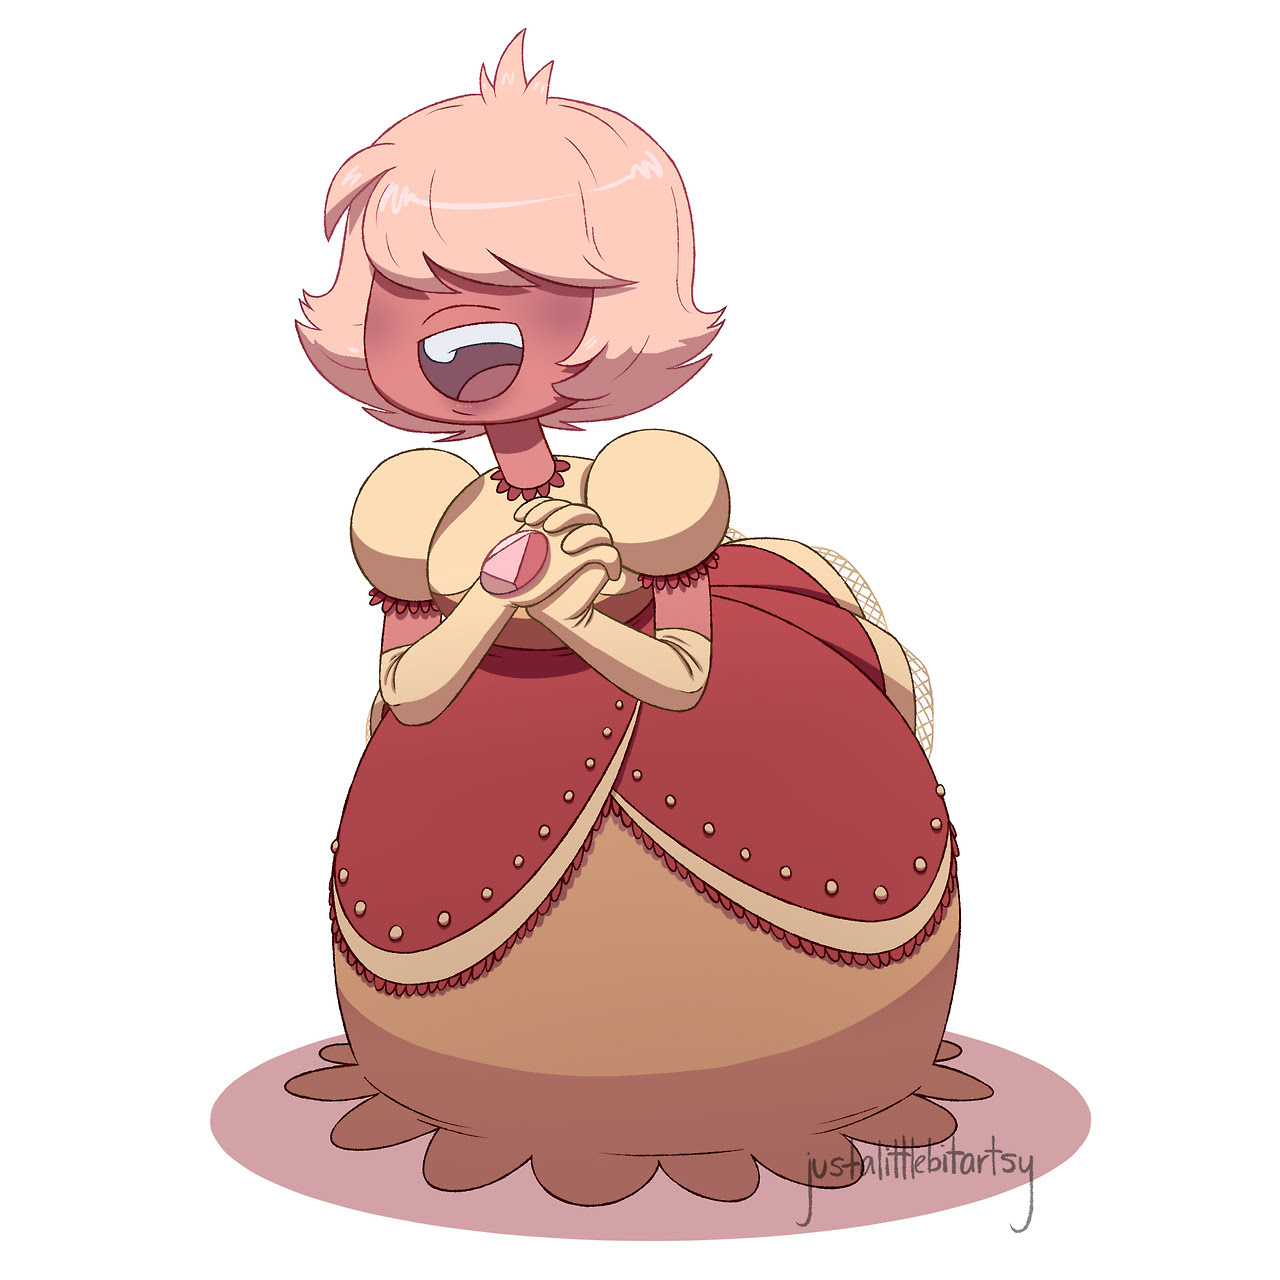 quick doodle of the precious sugarplum that is our Padparadscha (art by me, do not repost without credit) :)